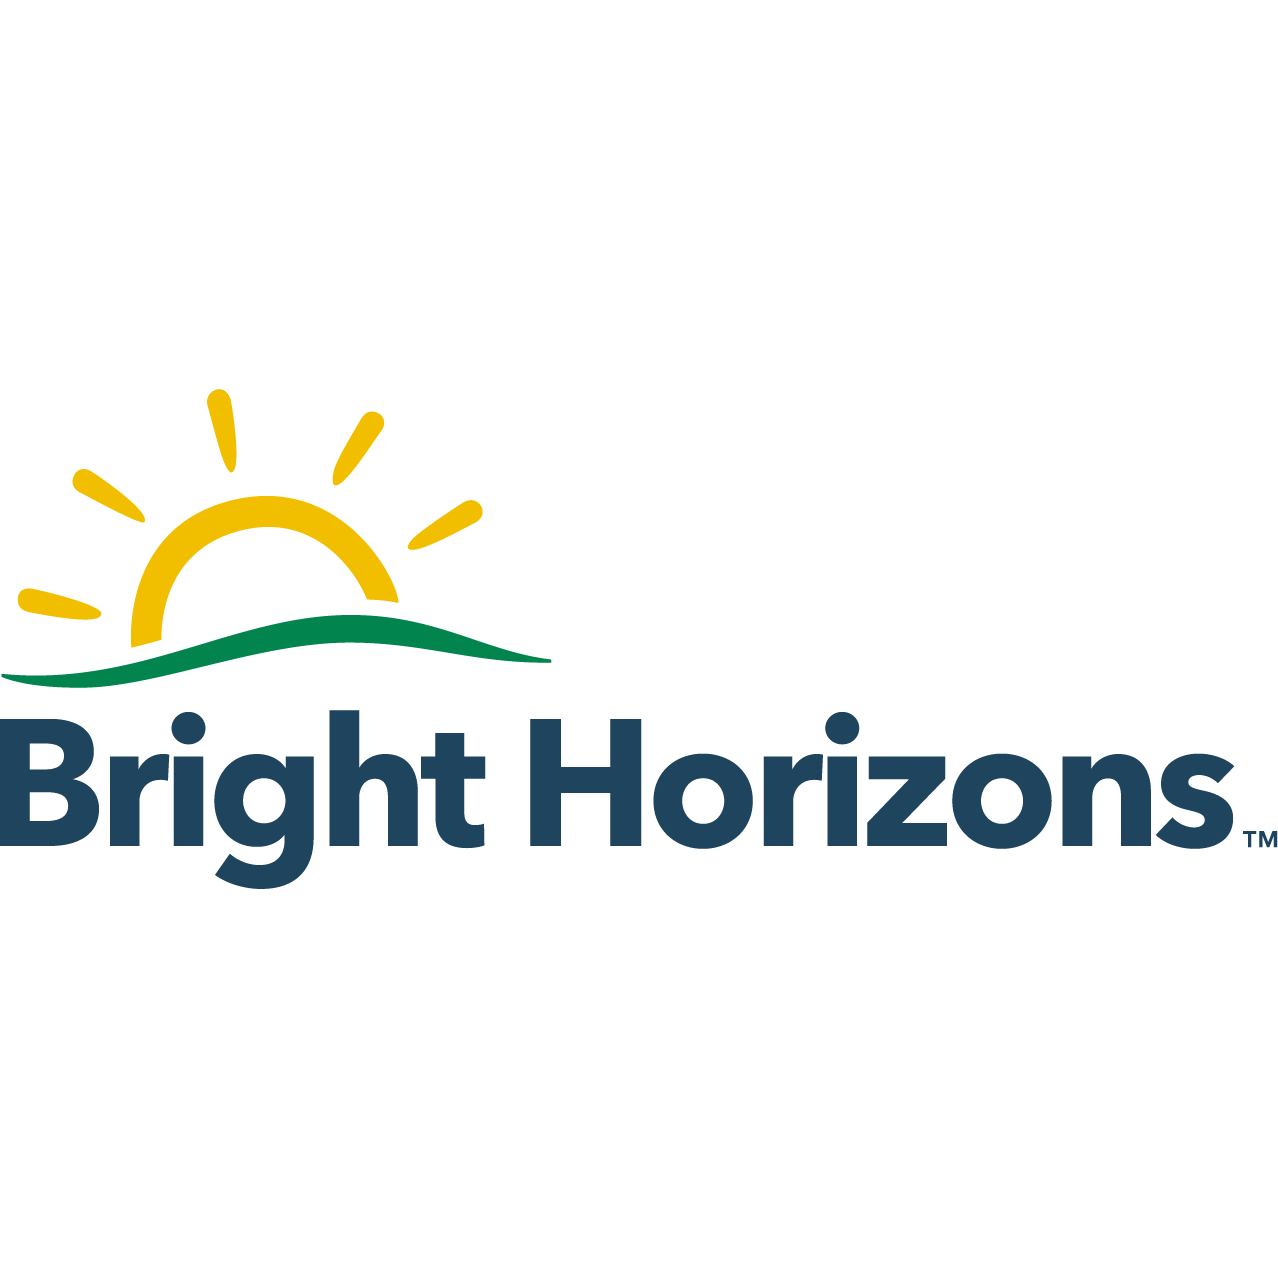 Bright Horizons The Park Day Nursery and Preschool - Watford, Hertfordshire WD18 7HR - 03702 187344 | ShowMeLocal.com